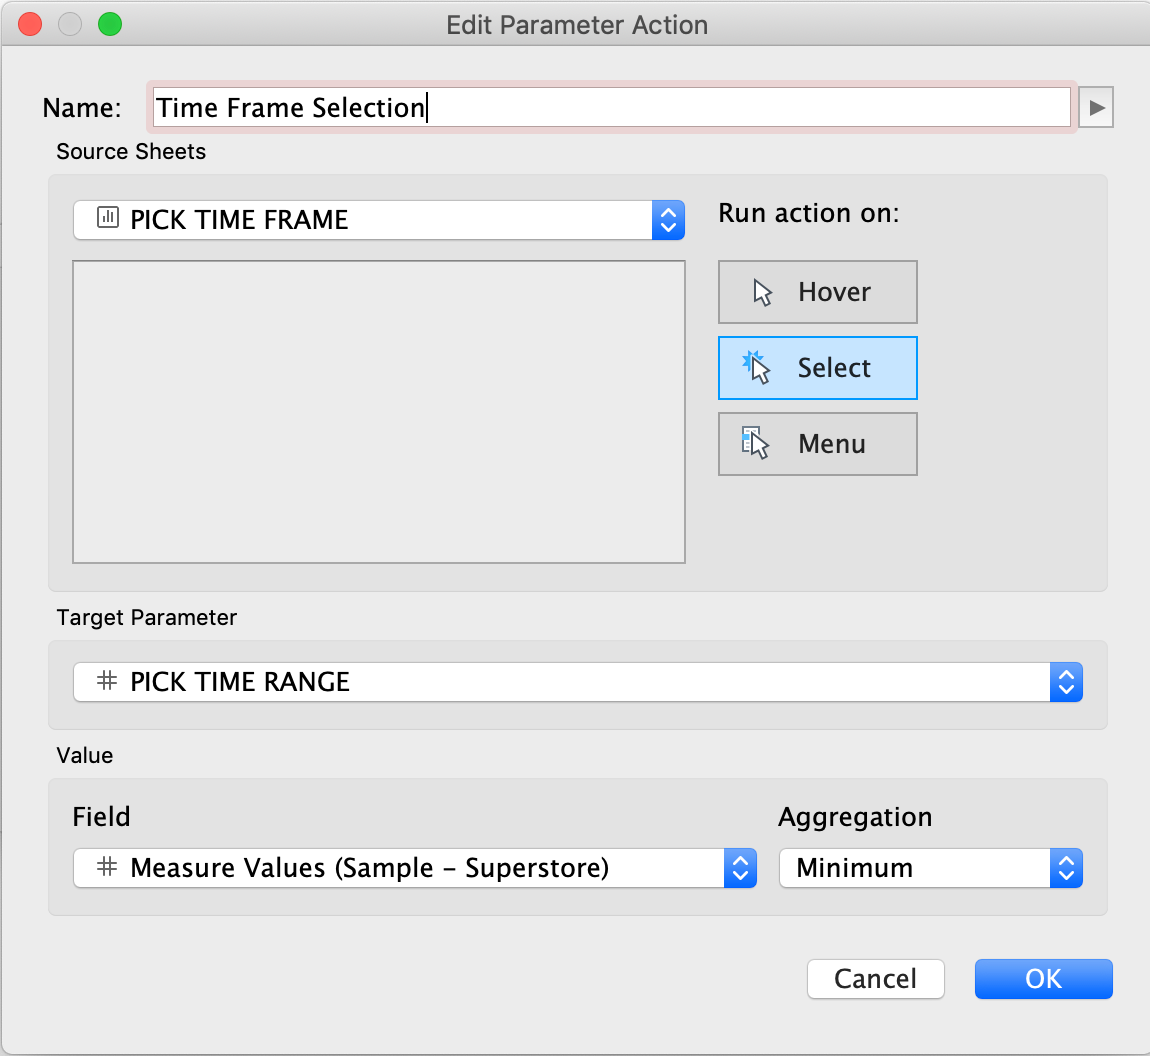 Edit_Parameter_Action_and_Actions_and_Tableau_-_Book2.png